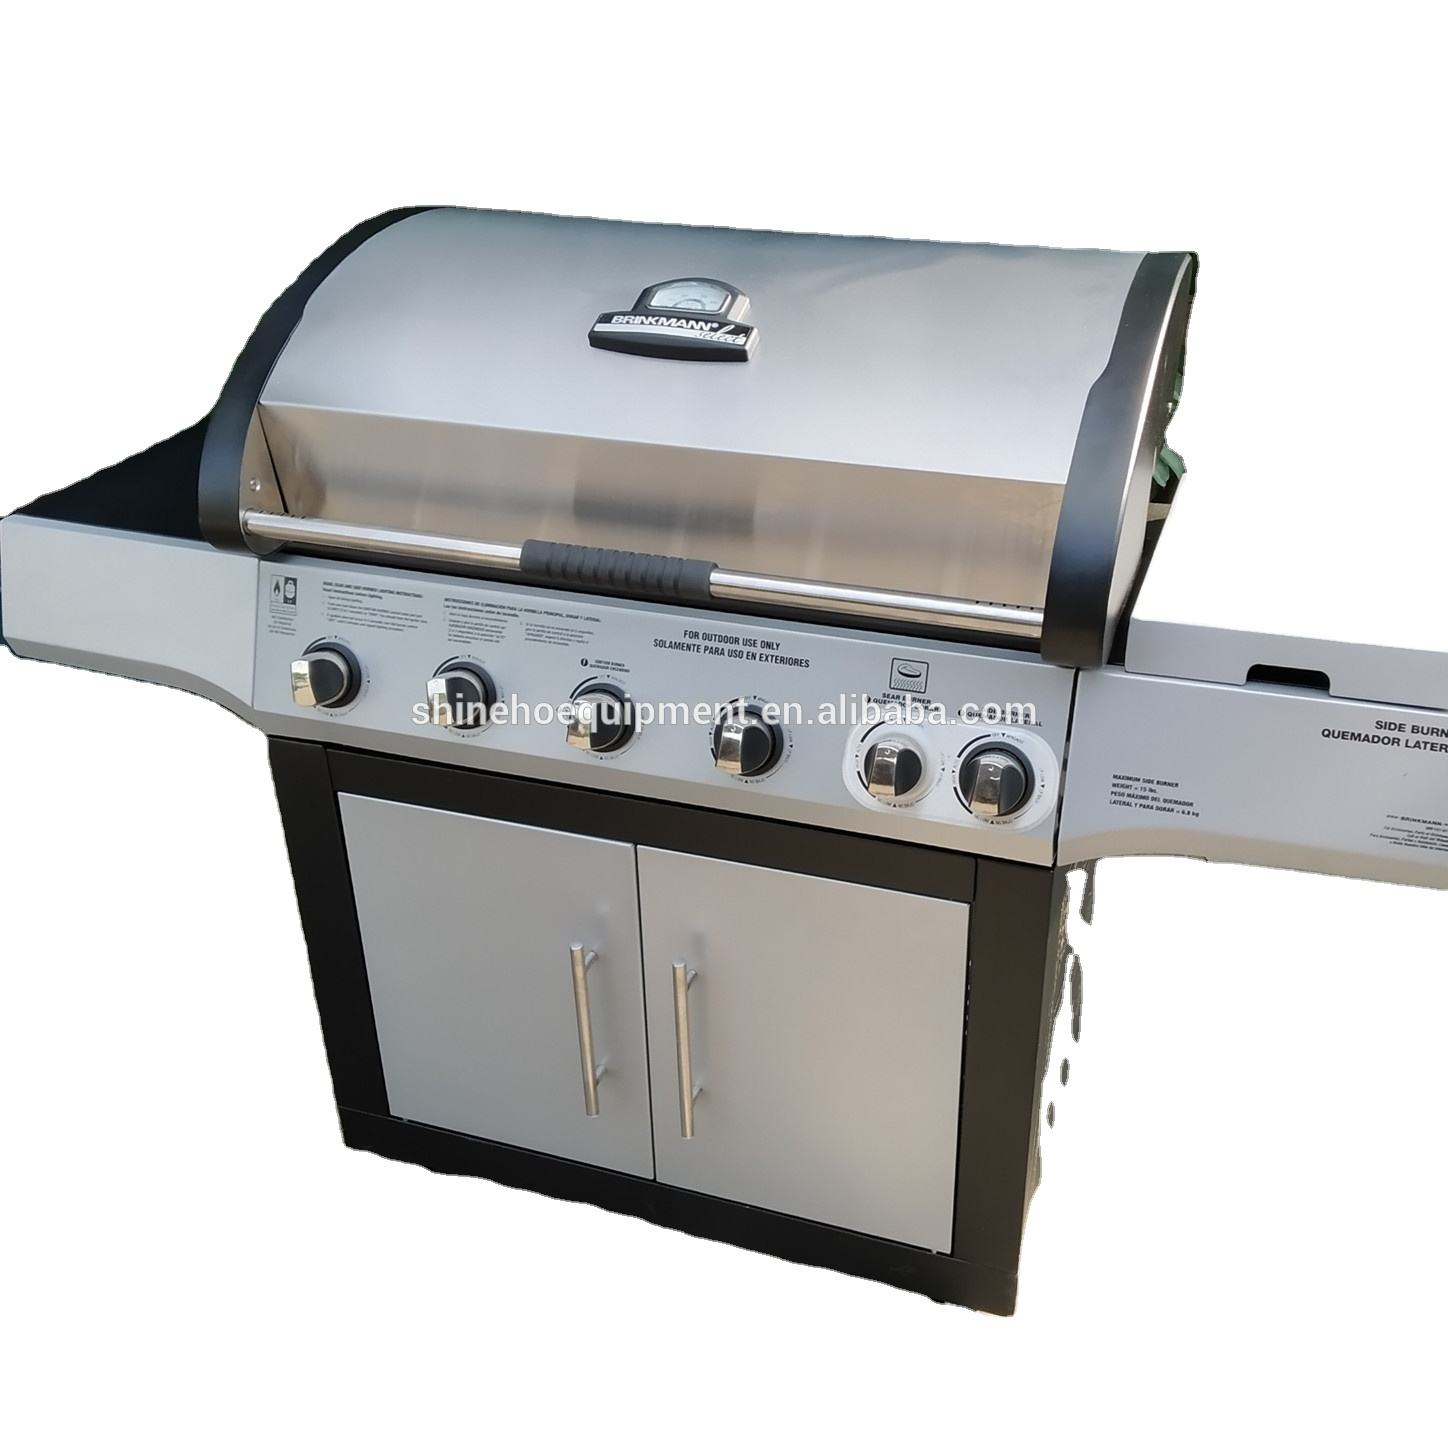 outdoor gas bbq grill, big stove strong pizza oven with skewer bbq grill set